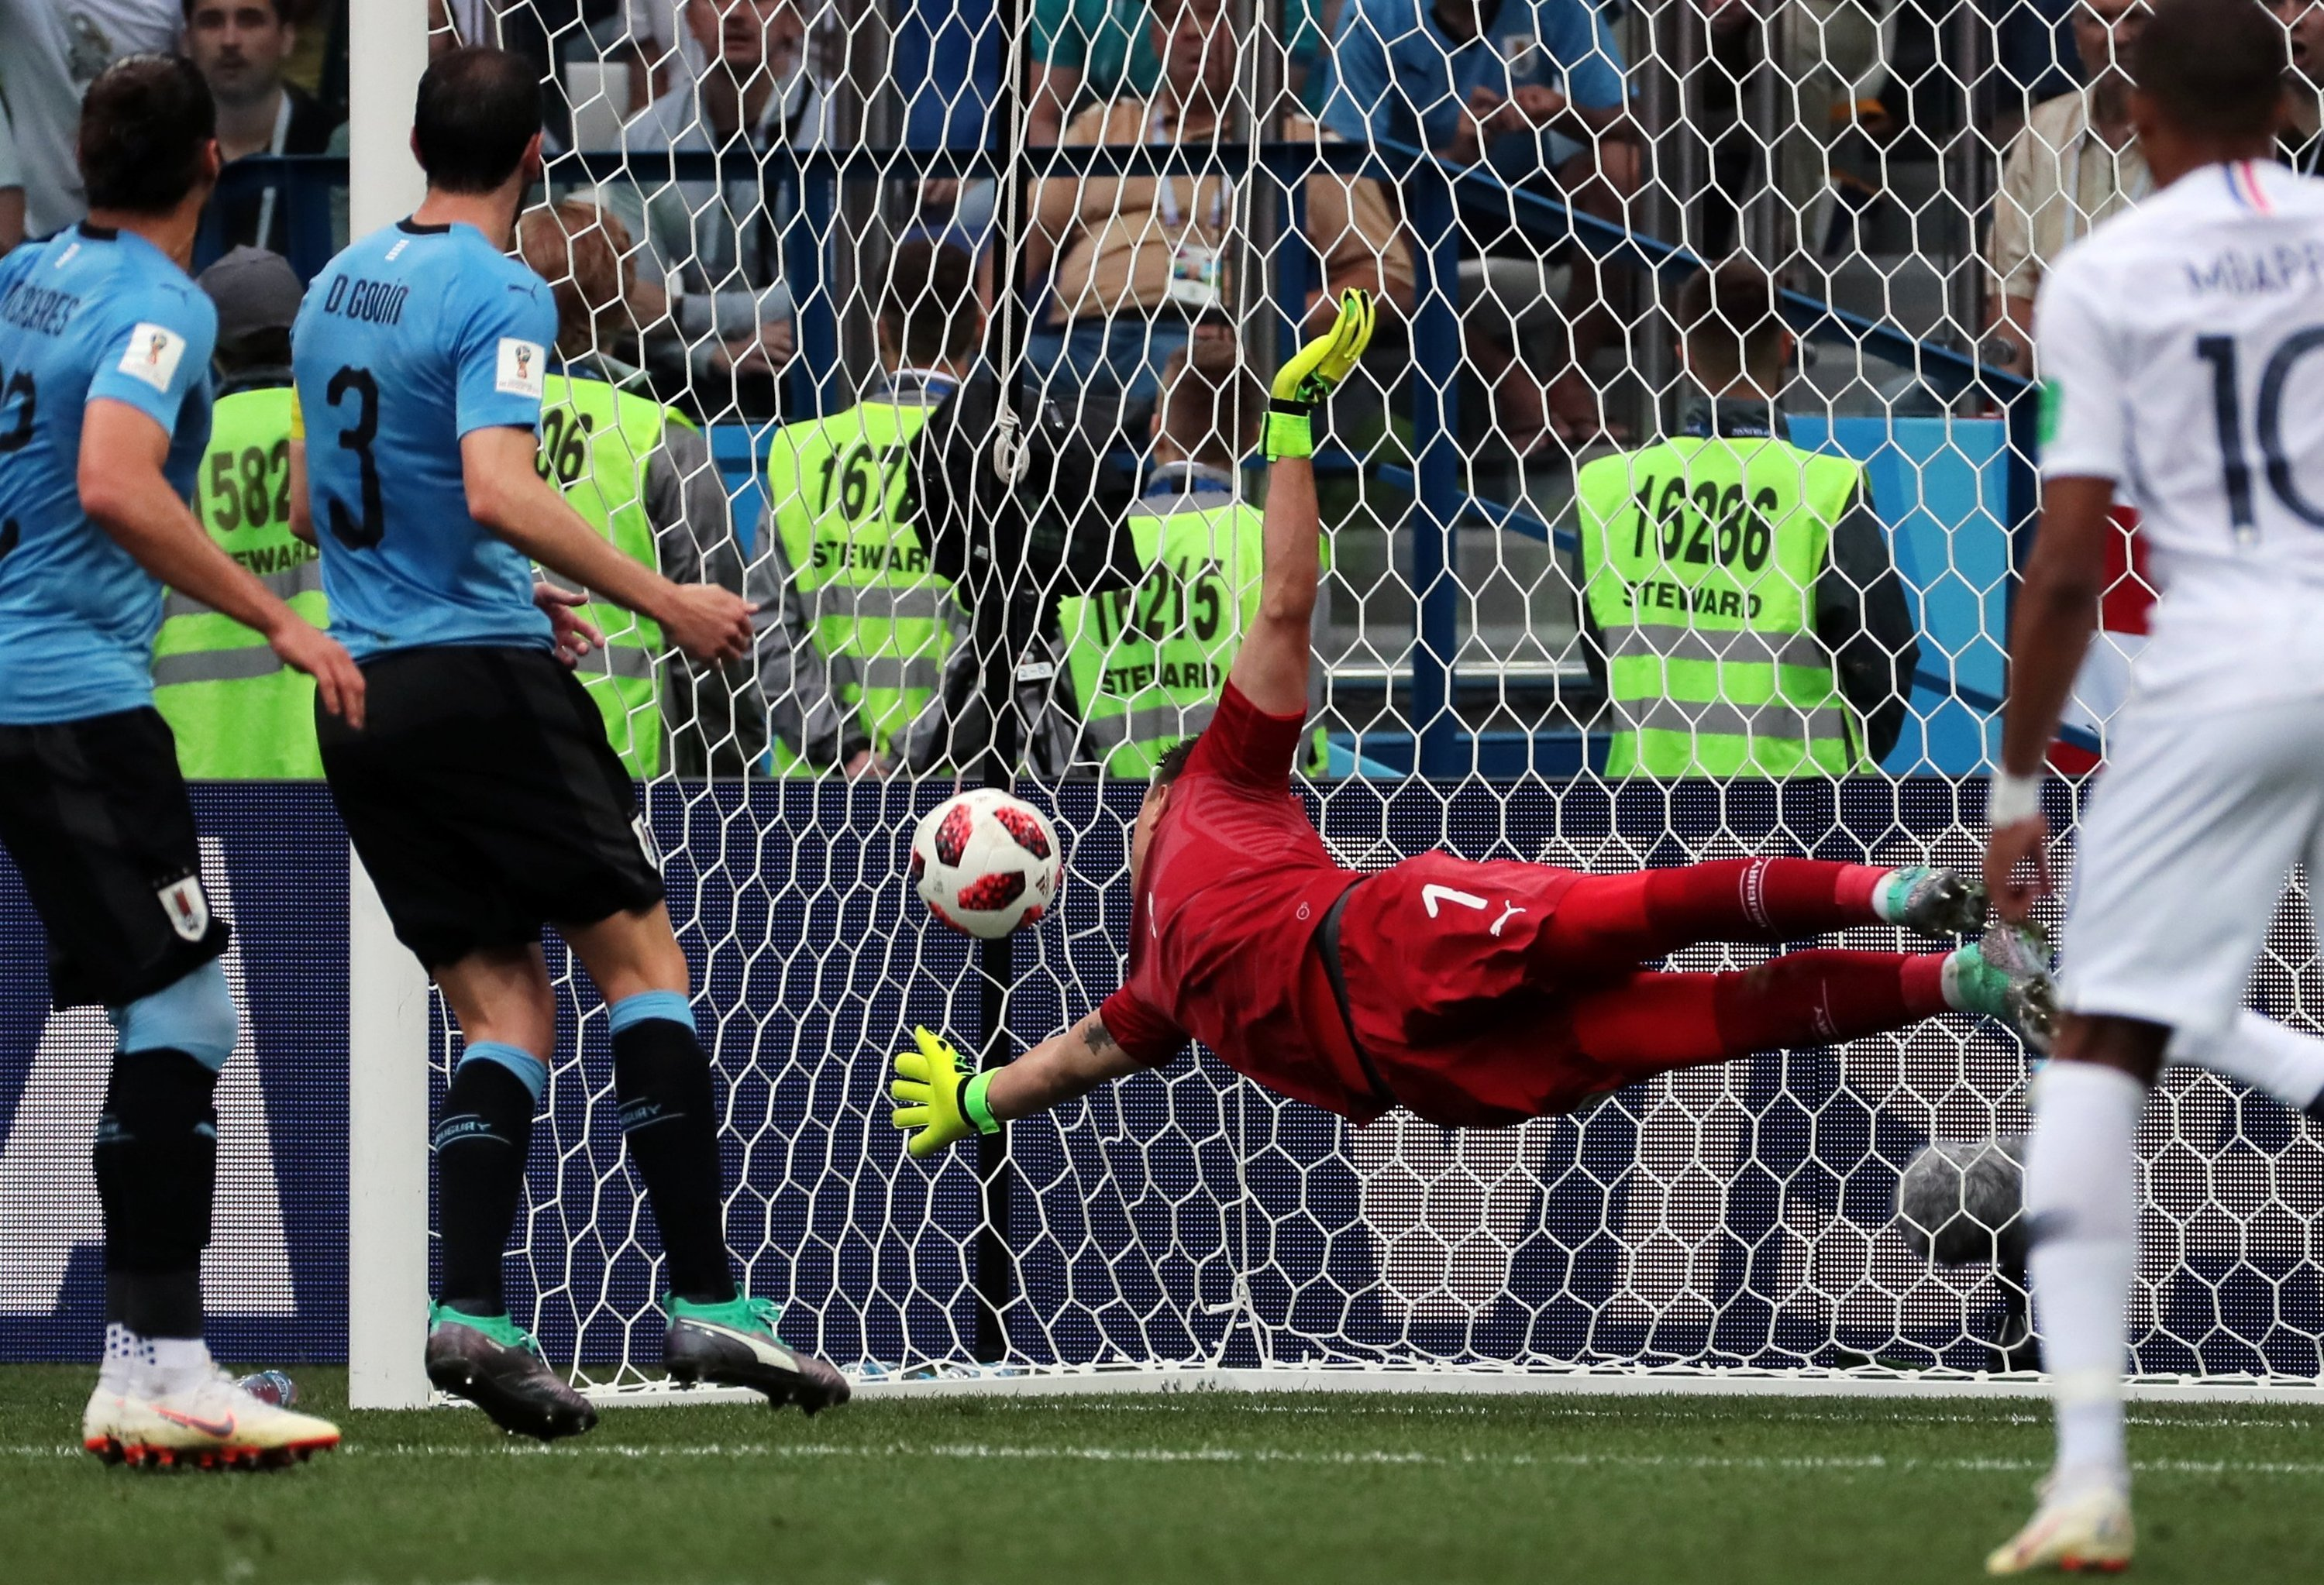 Soccer Football - World Cup - Quarter Final - Uruguay vs France - Nizhny Novgorod Stadium, Nizhny Novgorod, Russia - July 6, 2018 Uruguay's Fernando Muslera concedes as France's Raphael Varane scores their first goal